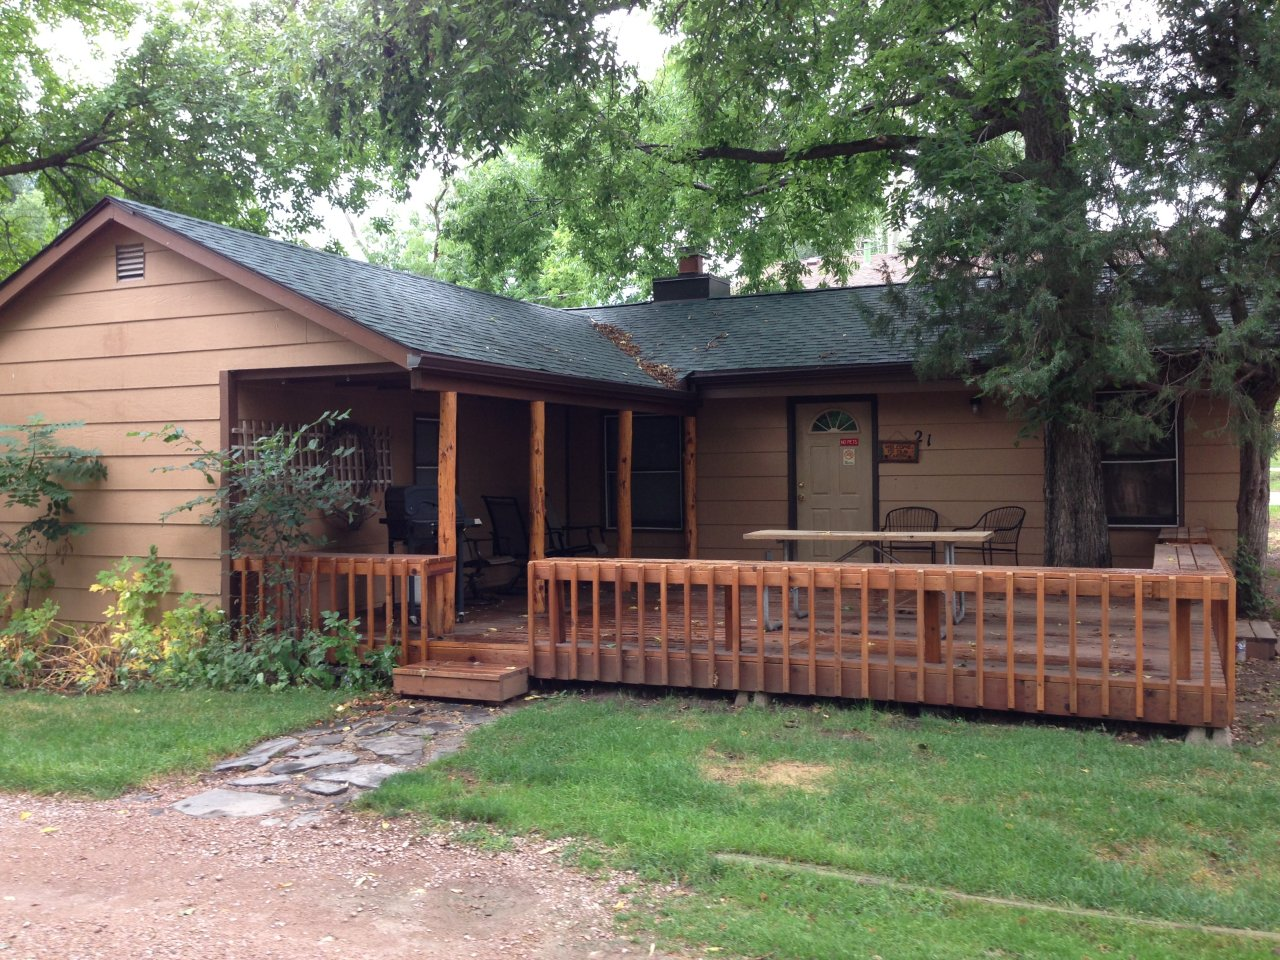 Lake Park 3 Bedroom Cottage - Rapid City SD